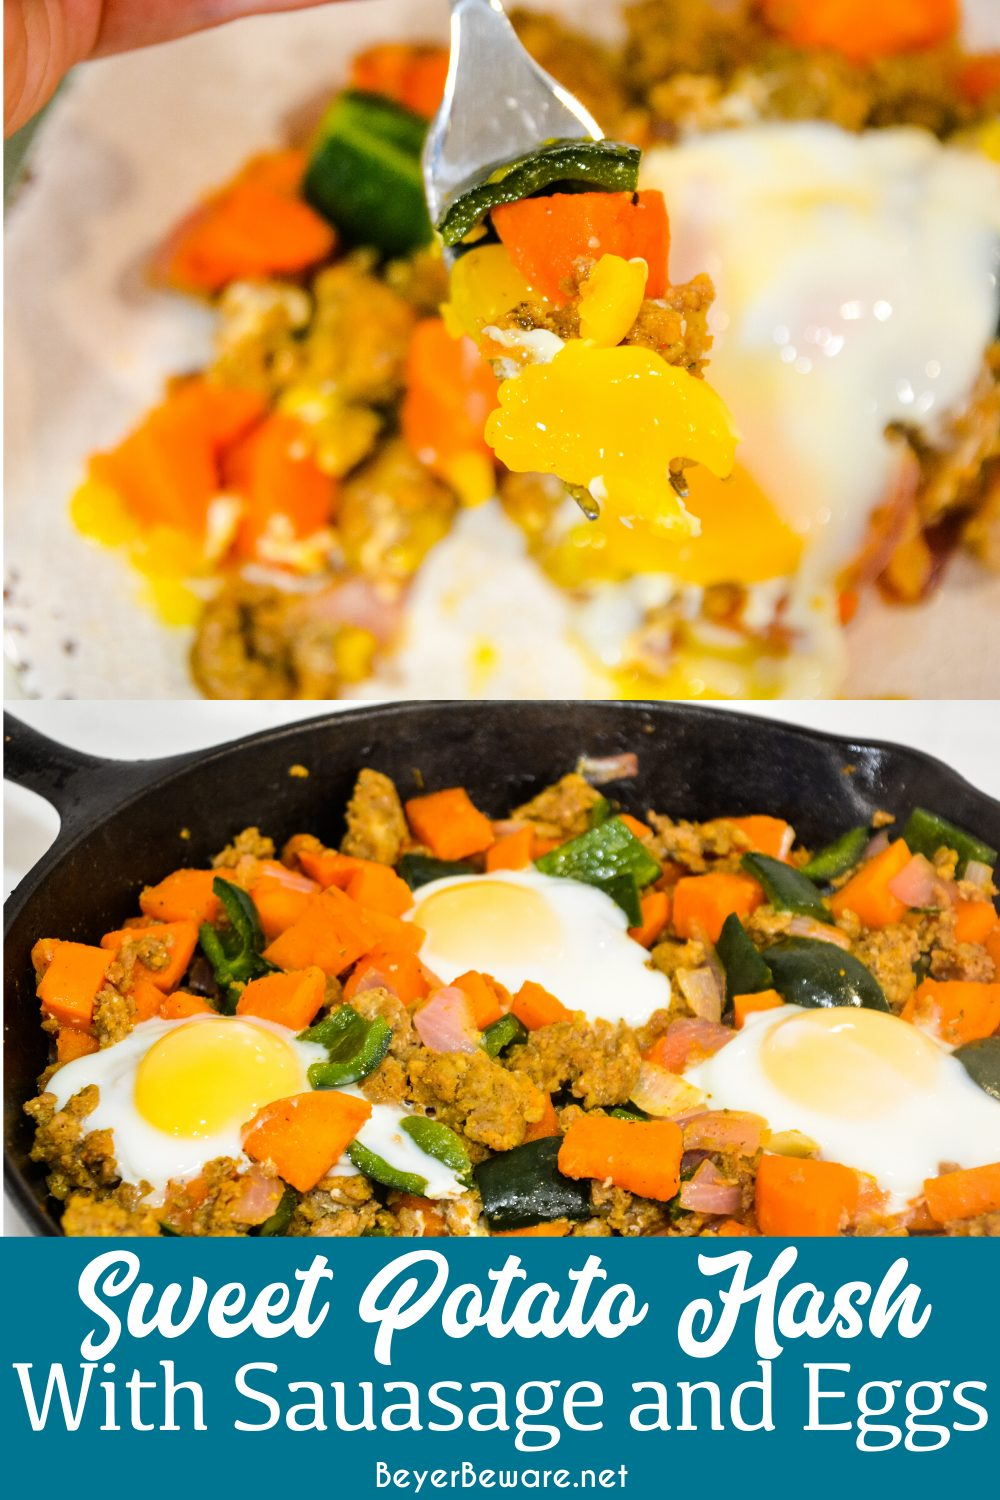 Sweet potato hash with sausage and eggs is a hearty breakfast skillet made with diced sweet potatoes, spicy sausage, onions, and poblano peppers with fried or poached eggs over the top.